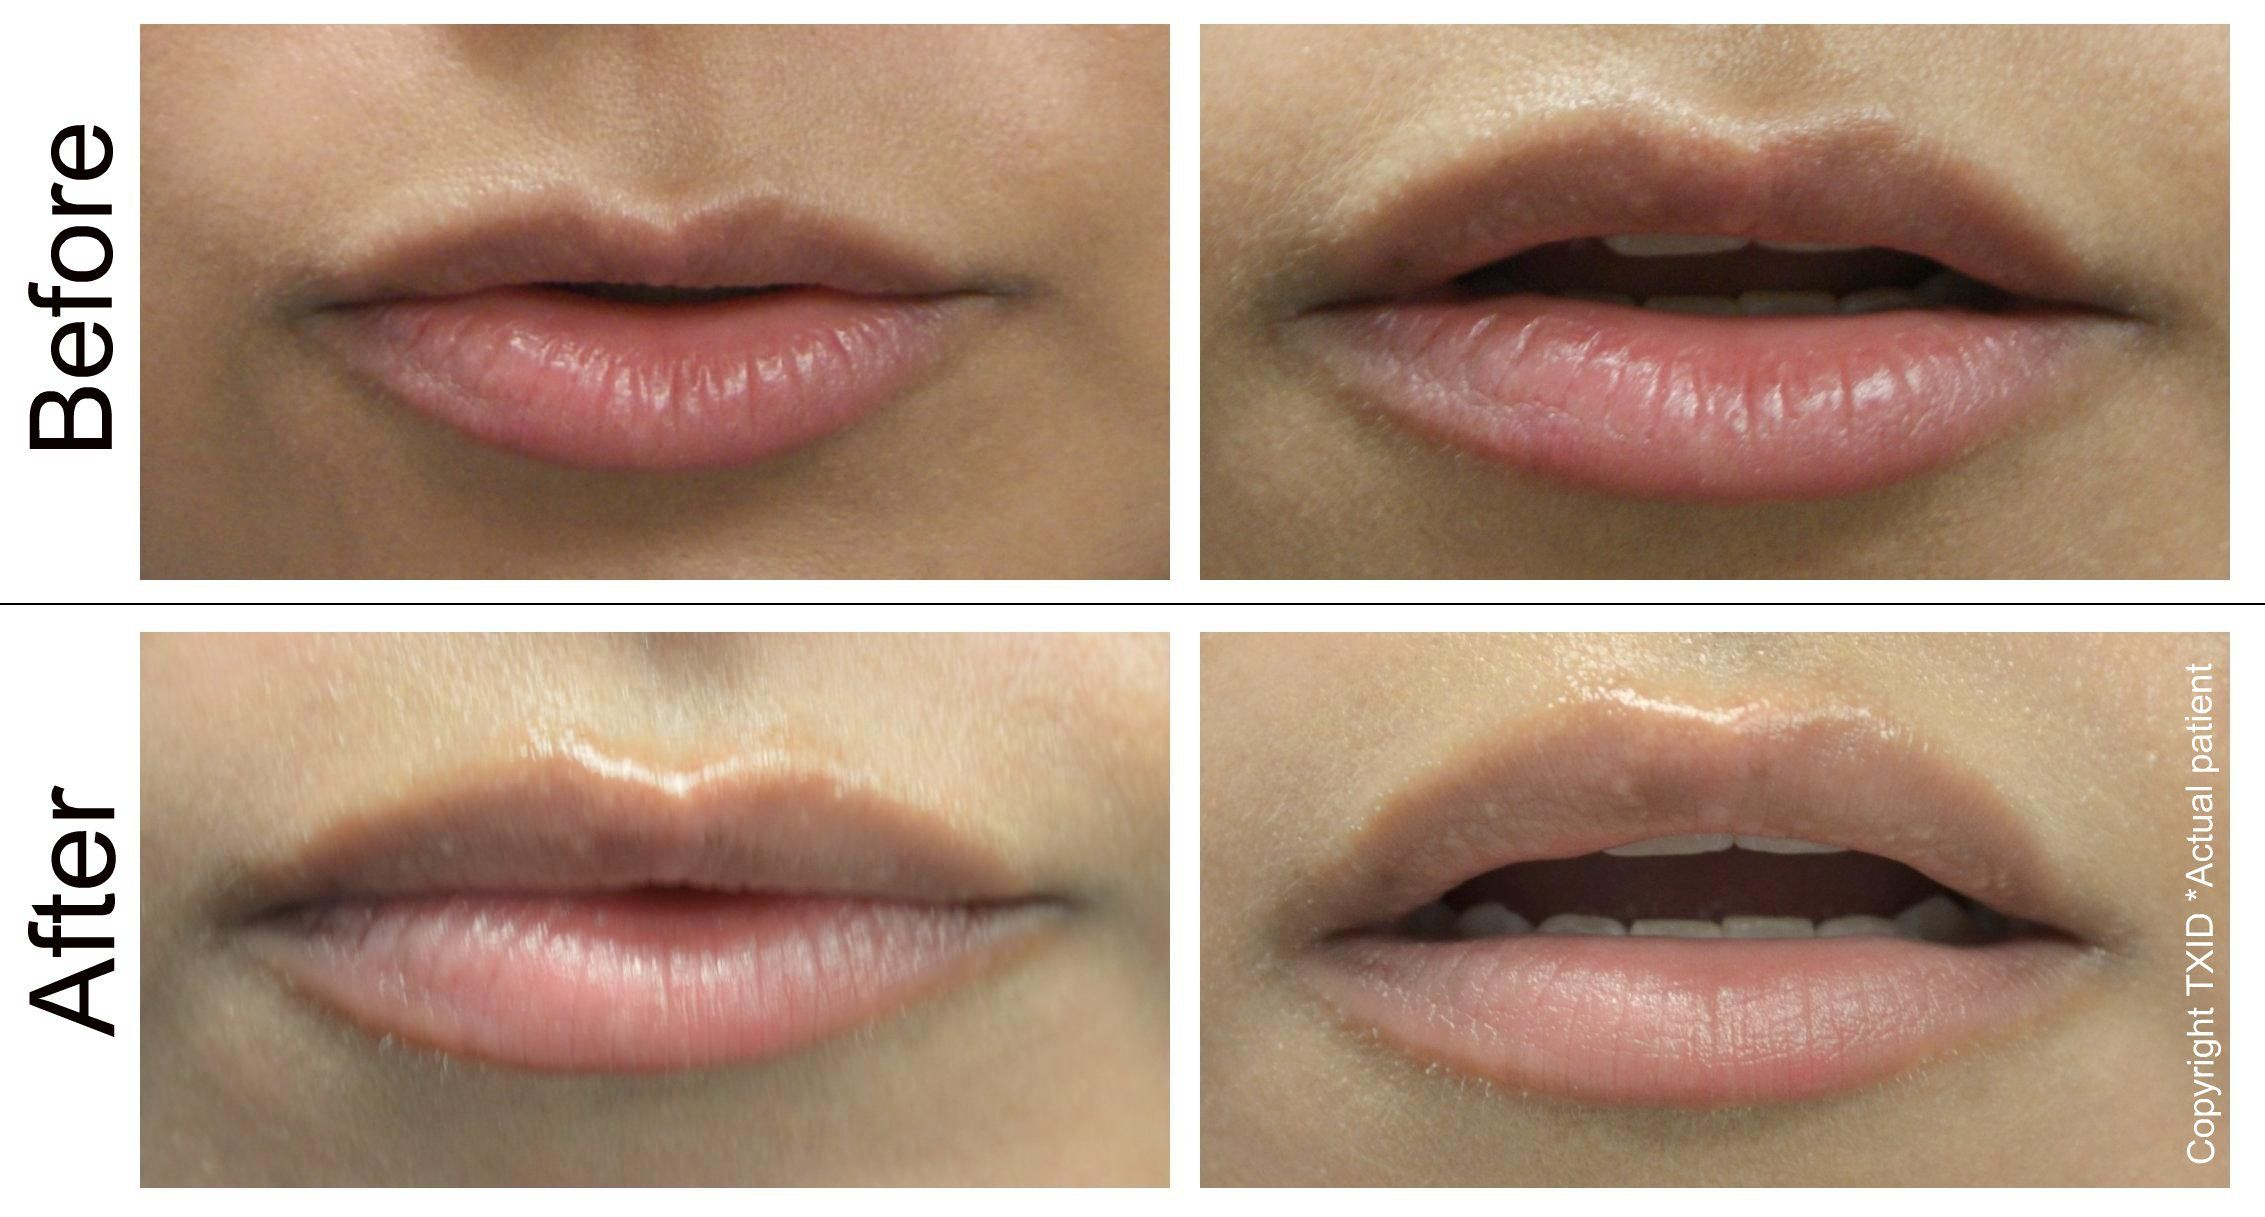 Lip Augmentation Surgery Many New And Exciting